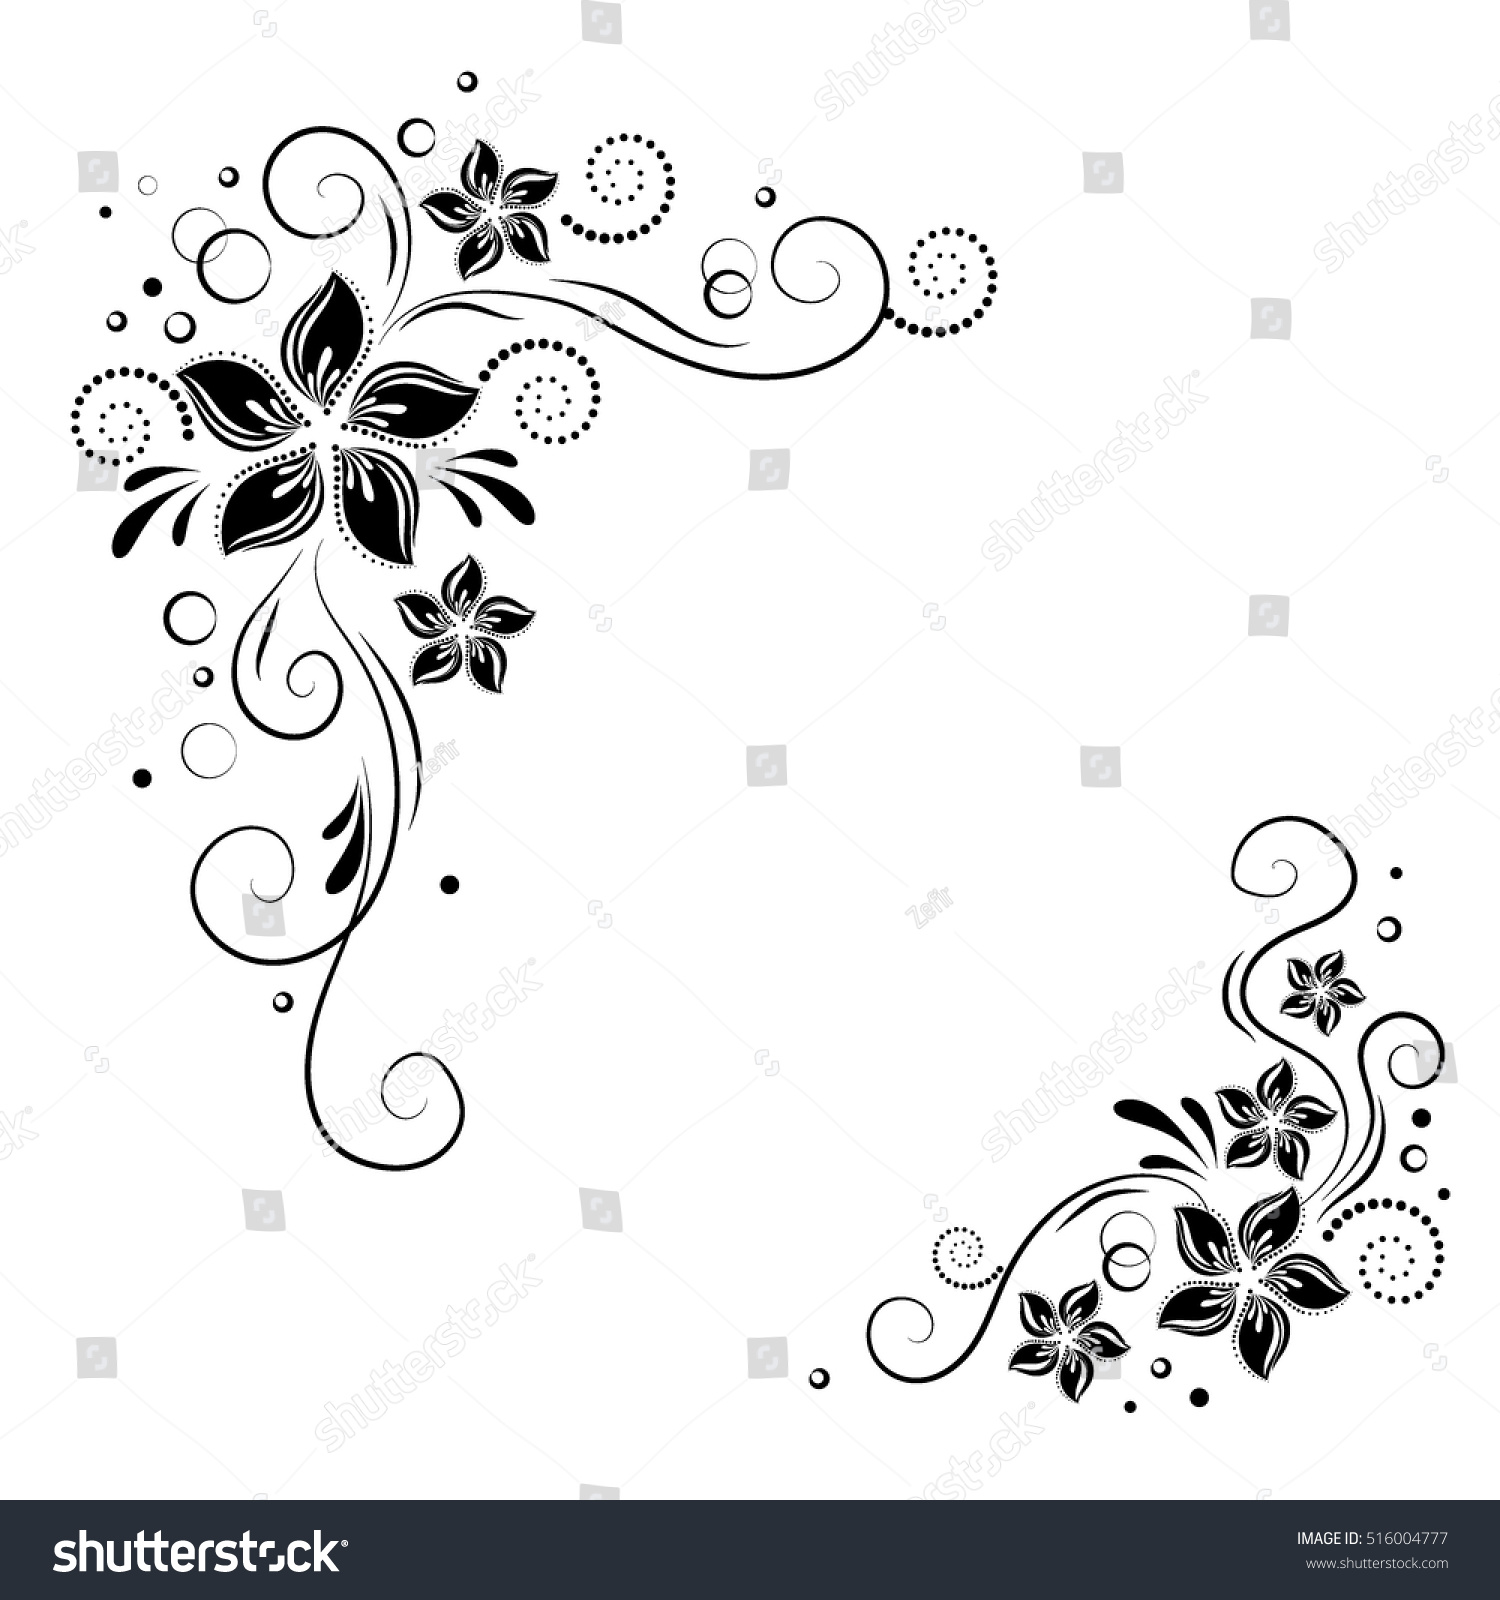 Decorative Black Flower Border Stock Image: Floral Corner Design Ornament Black Flowers Stock Vector